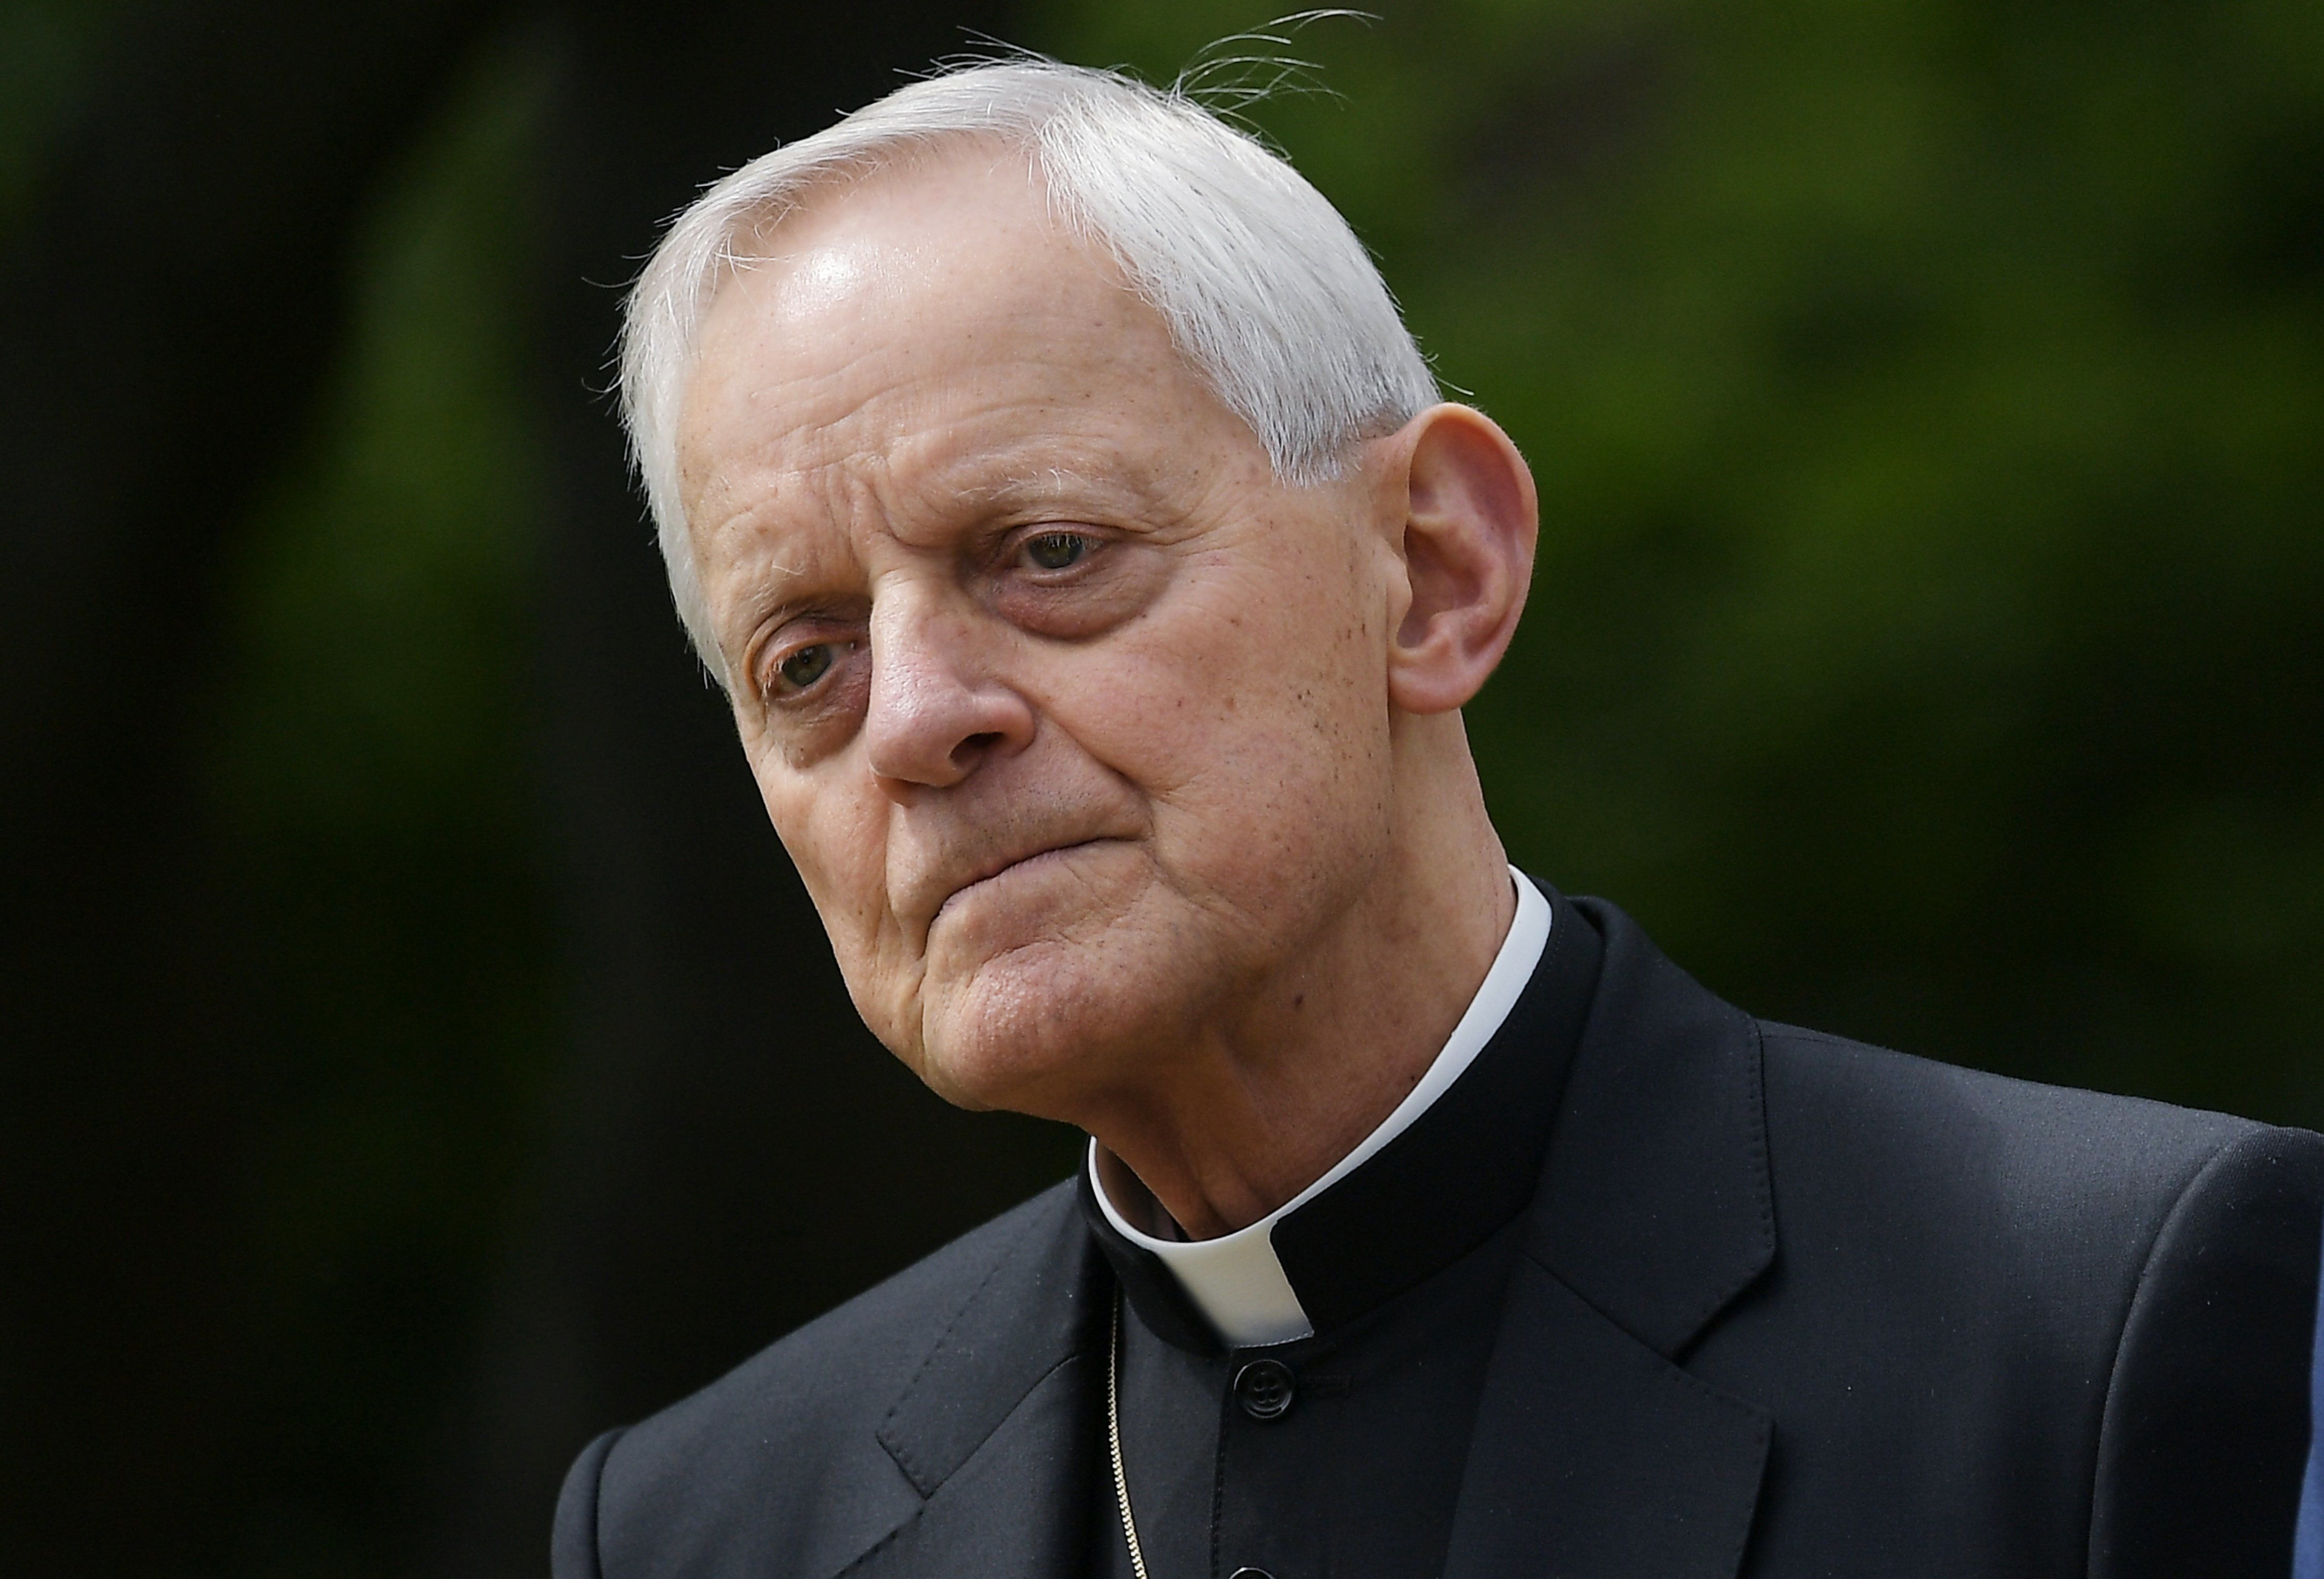 Archbishop of Washington Donald Wuerl attends a signing ceremony for an Executive Order on Promoting Free Speech and Religious Liberty in the Rose Garden of the White House on May 4, 2017 in Washington, DC. Trump issued an executive order on Thursday making it easier for churches and religious groups to take part in politics without risk of losing their tax-exempt status, a senior White House official said. / AFP PHOTO / MANDEL NGAN        (Photo credit should read MANDEL NGAN/AFP/Getty Images)